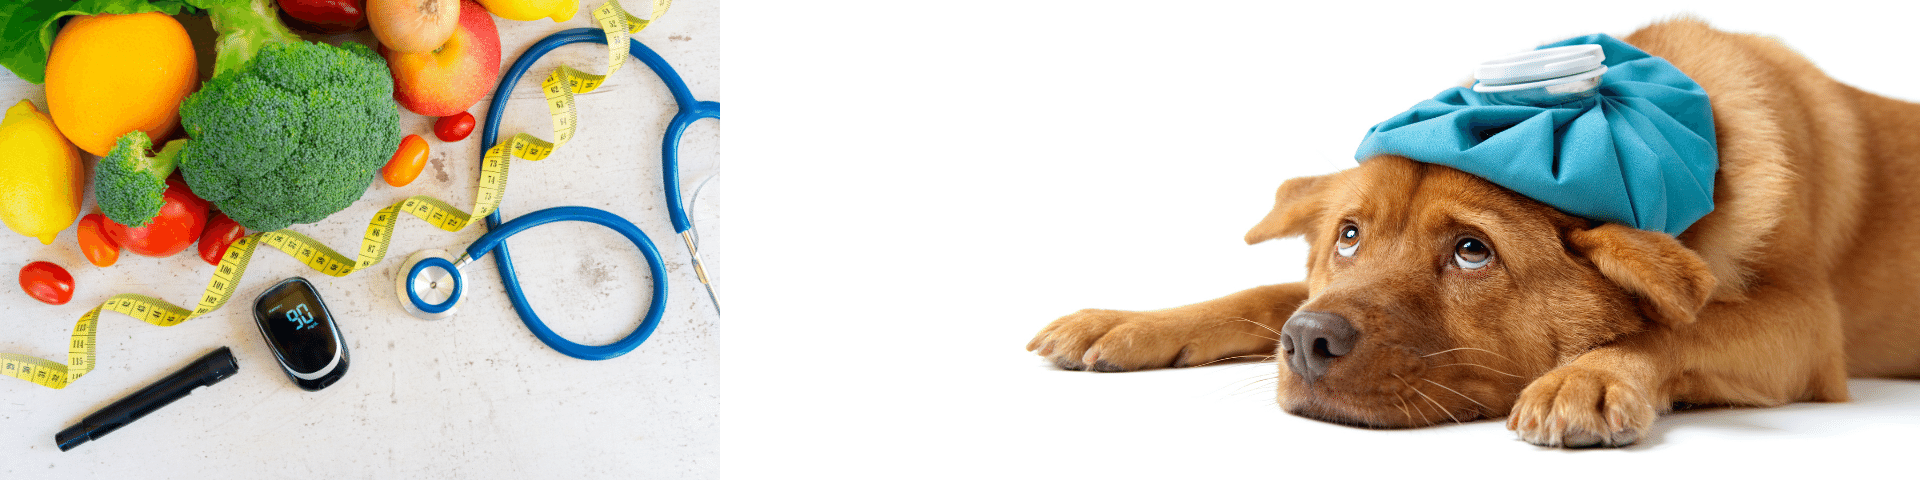 Signs of diabetes in dogs